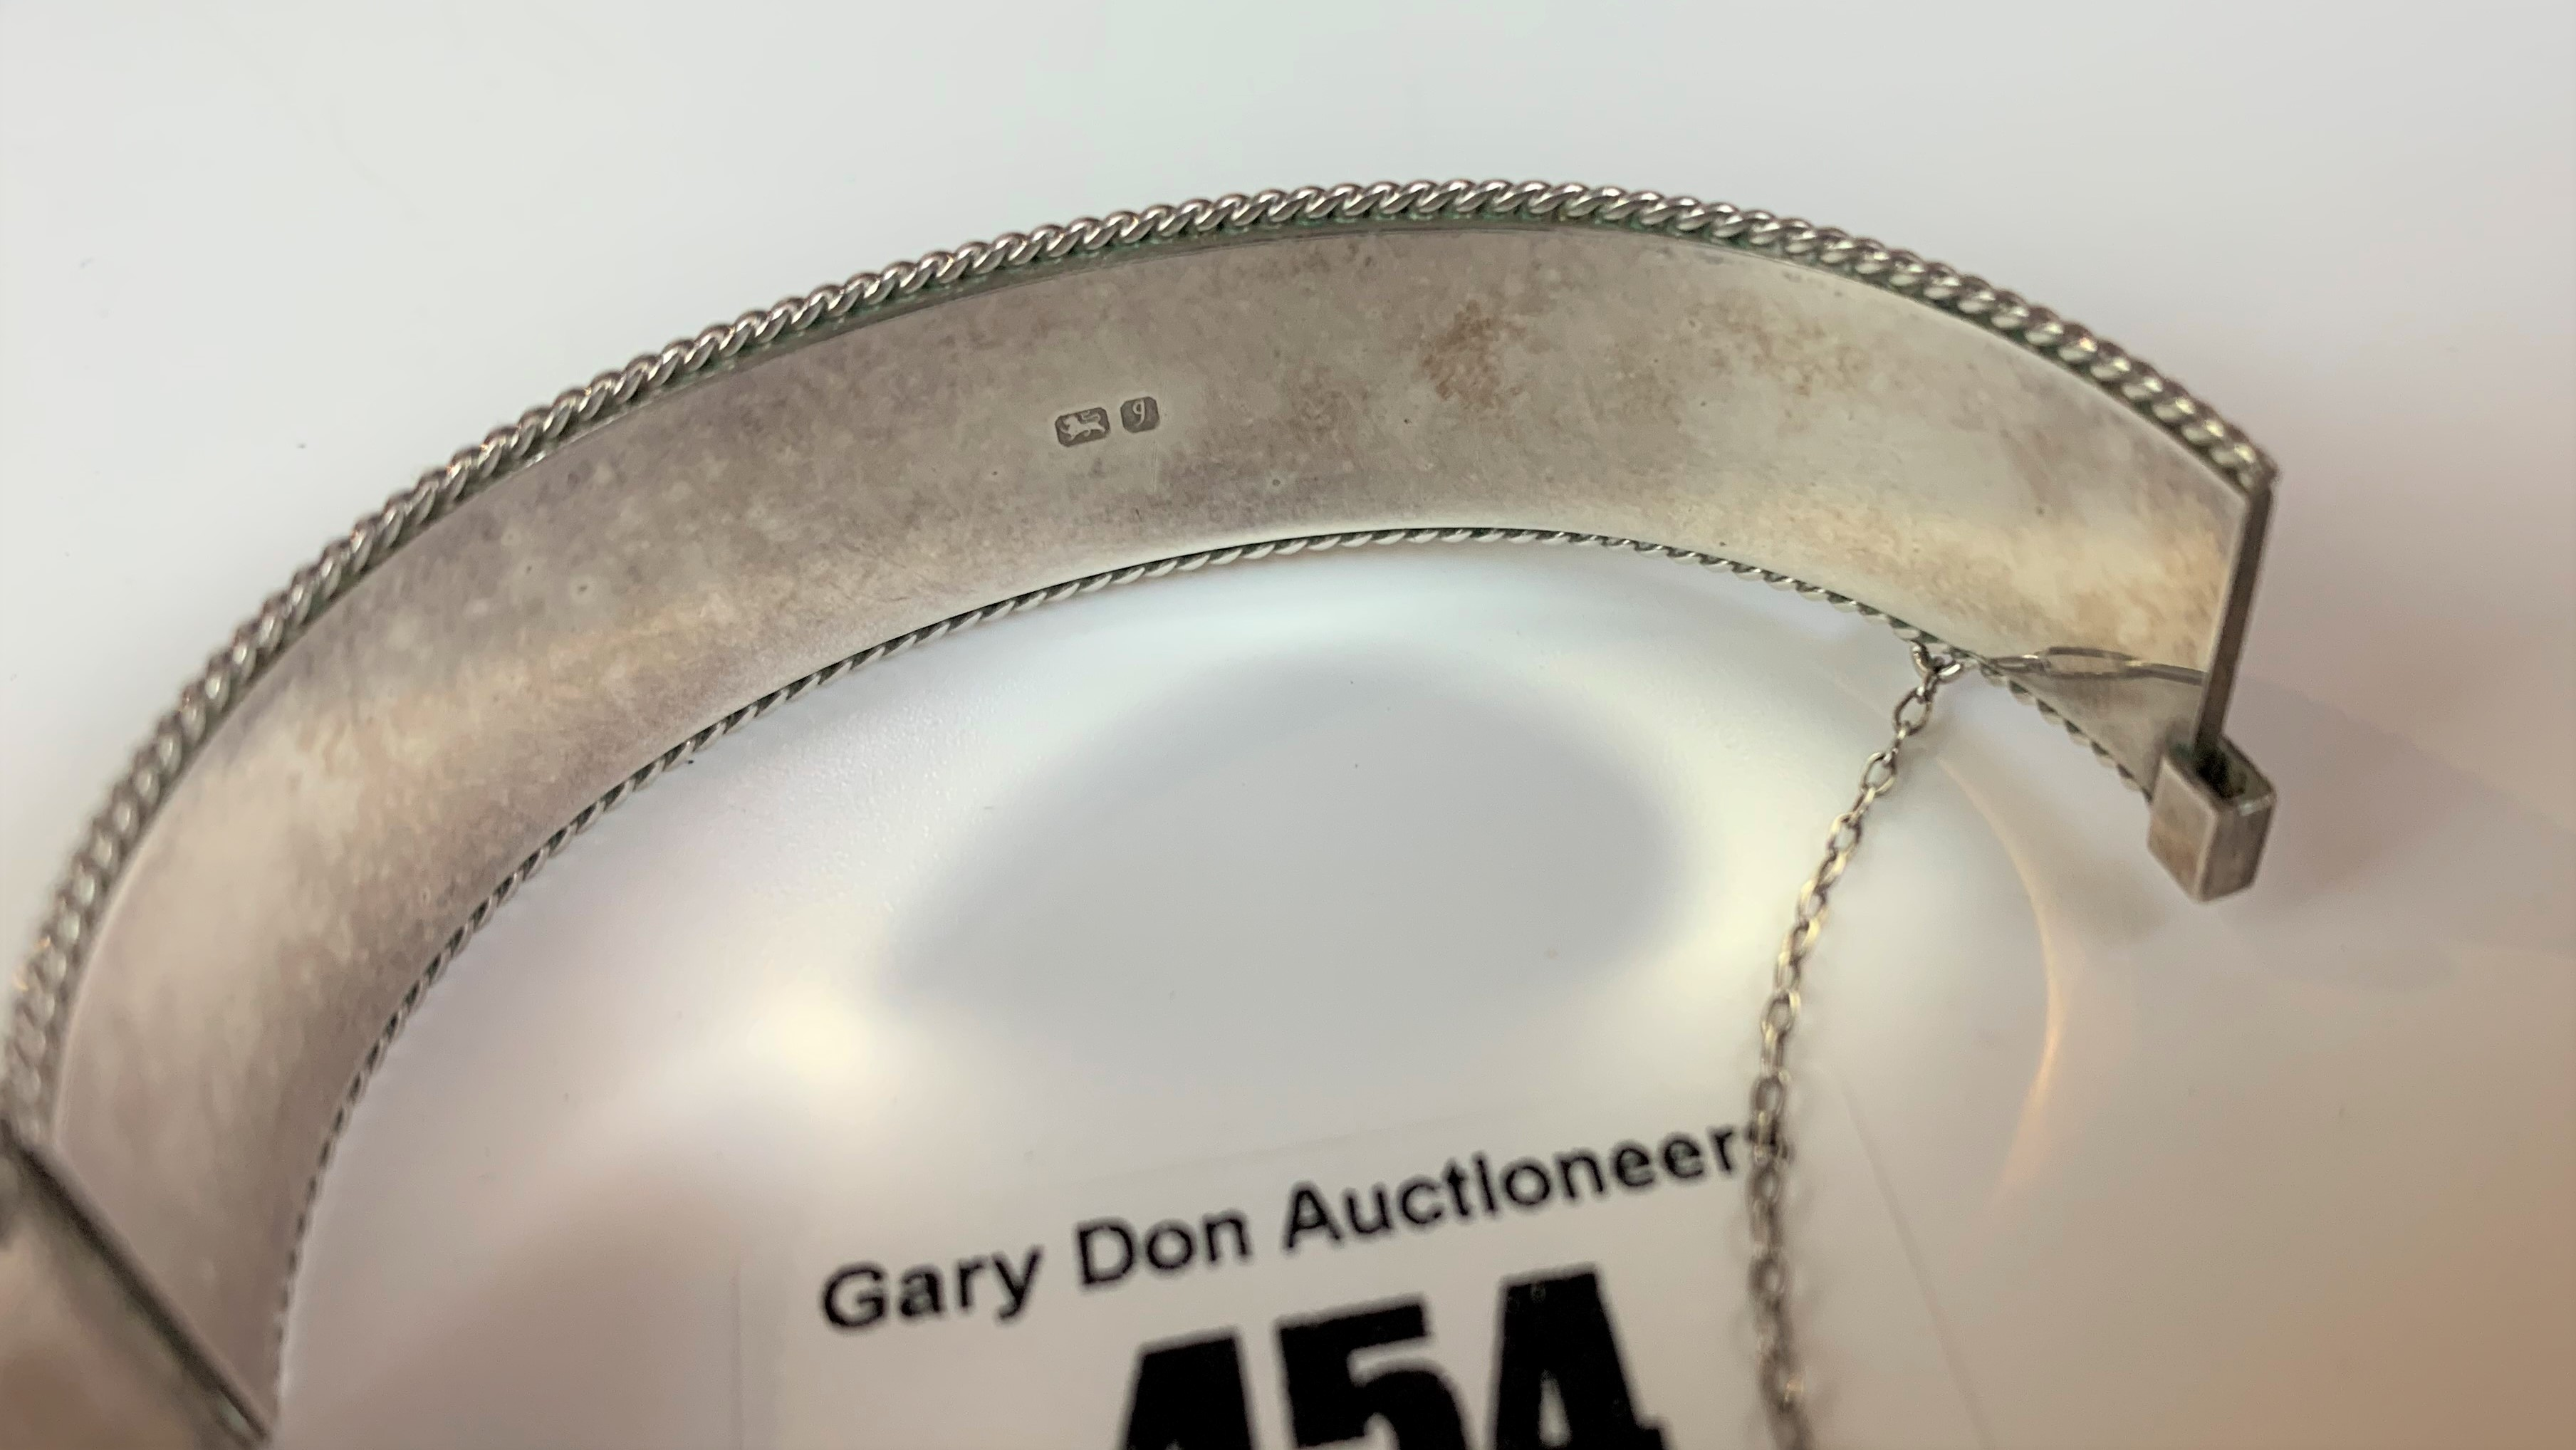 2 silver engraved bangles, total w: 1.5 ozt - Image 6 of 7